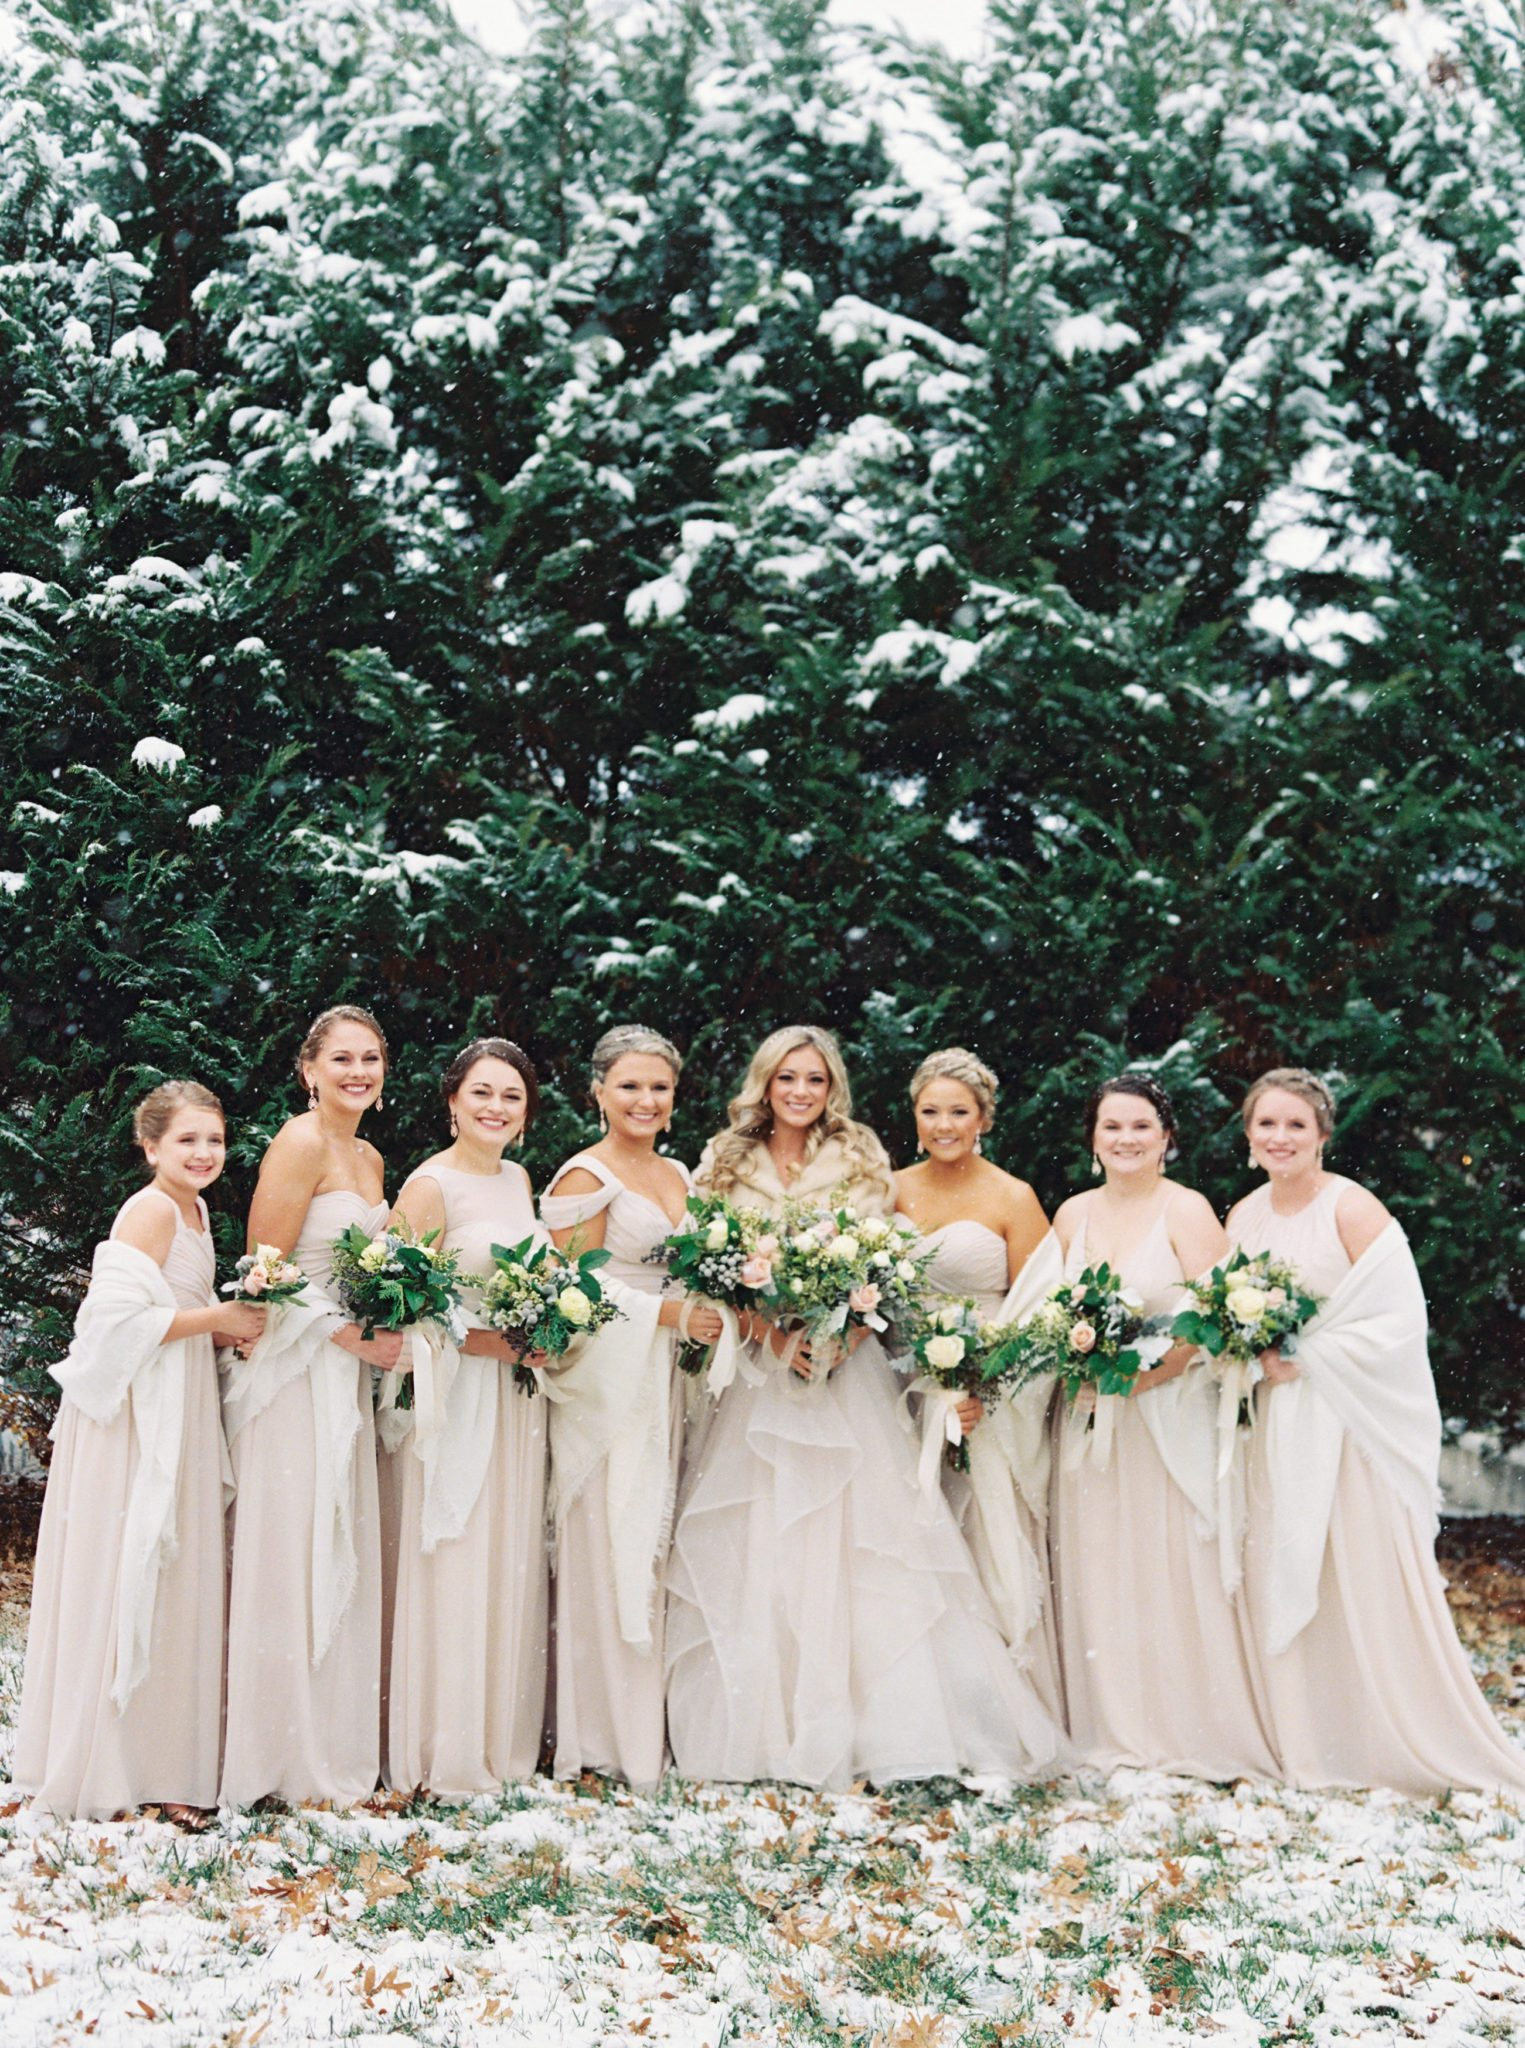 KimStockwellAshleyandMattMoraisVIneyardWedding307 Winter Weddings - A Snow Fairy Tale